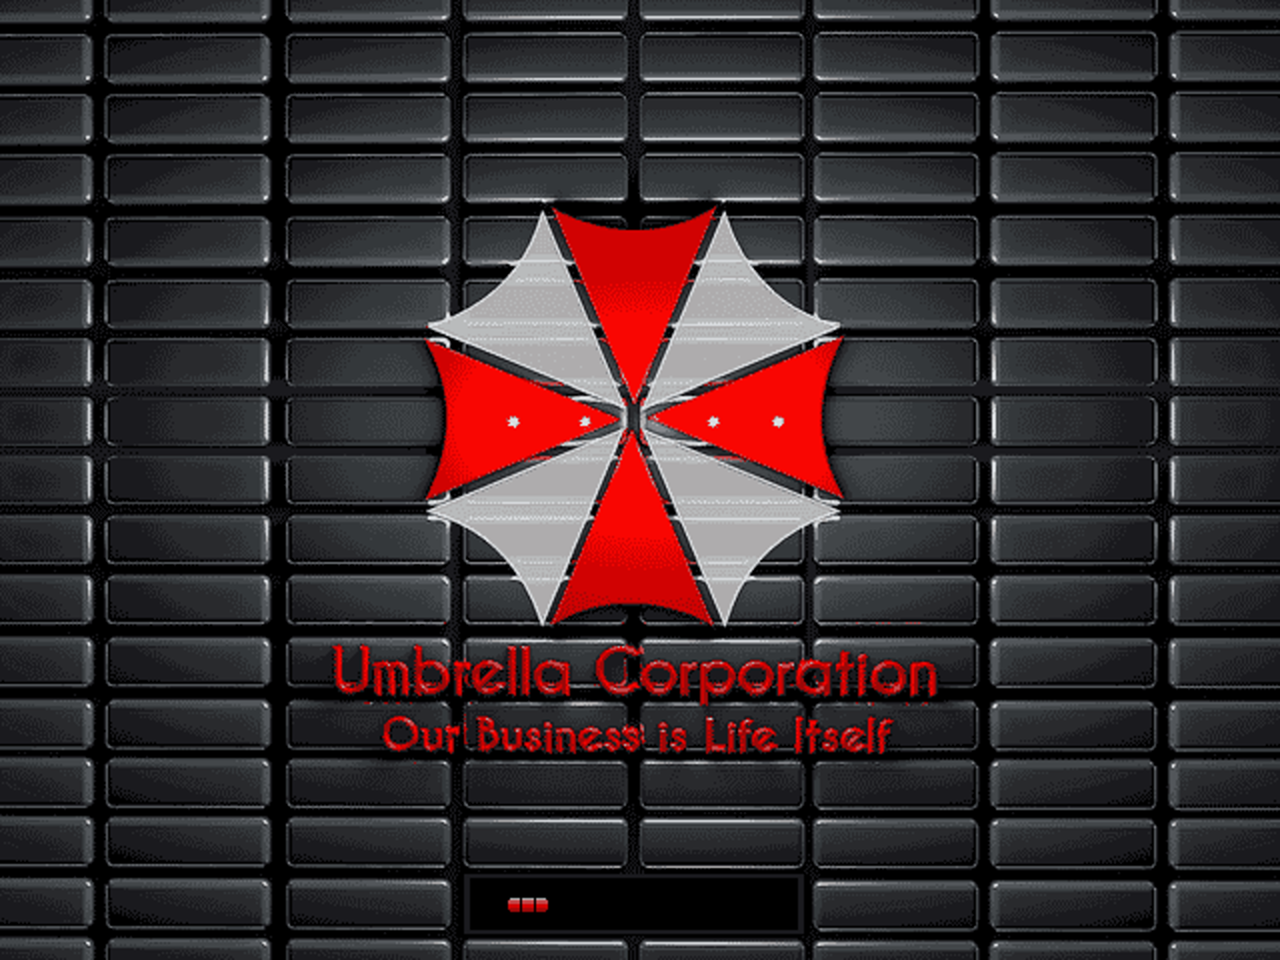 Umbrella Corporation theme 2 by ~Alphamatroxom on deviantART